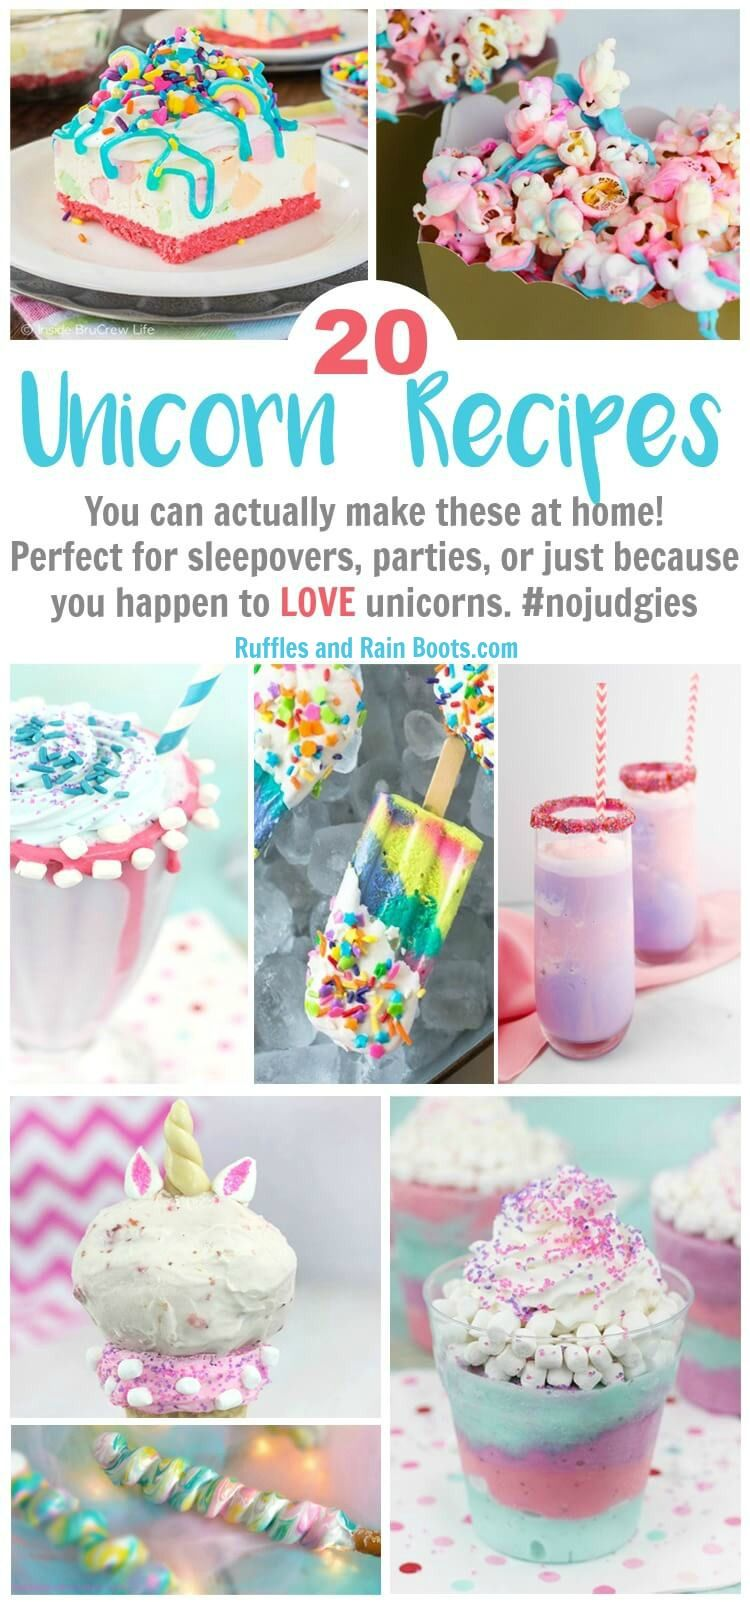 20 of The Best Unicorn Foods You Can Actually Make at Home - Unicorn pool party, Unicorn foods, Unicorn birthday parties, Unicorn party, Birthday party planning, Rainbow birthday - Make one (or all) of these 20 of the best unicorn recipes you can actually make yourself! They're perfect for unicorn lovers, birthdays, or parties